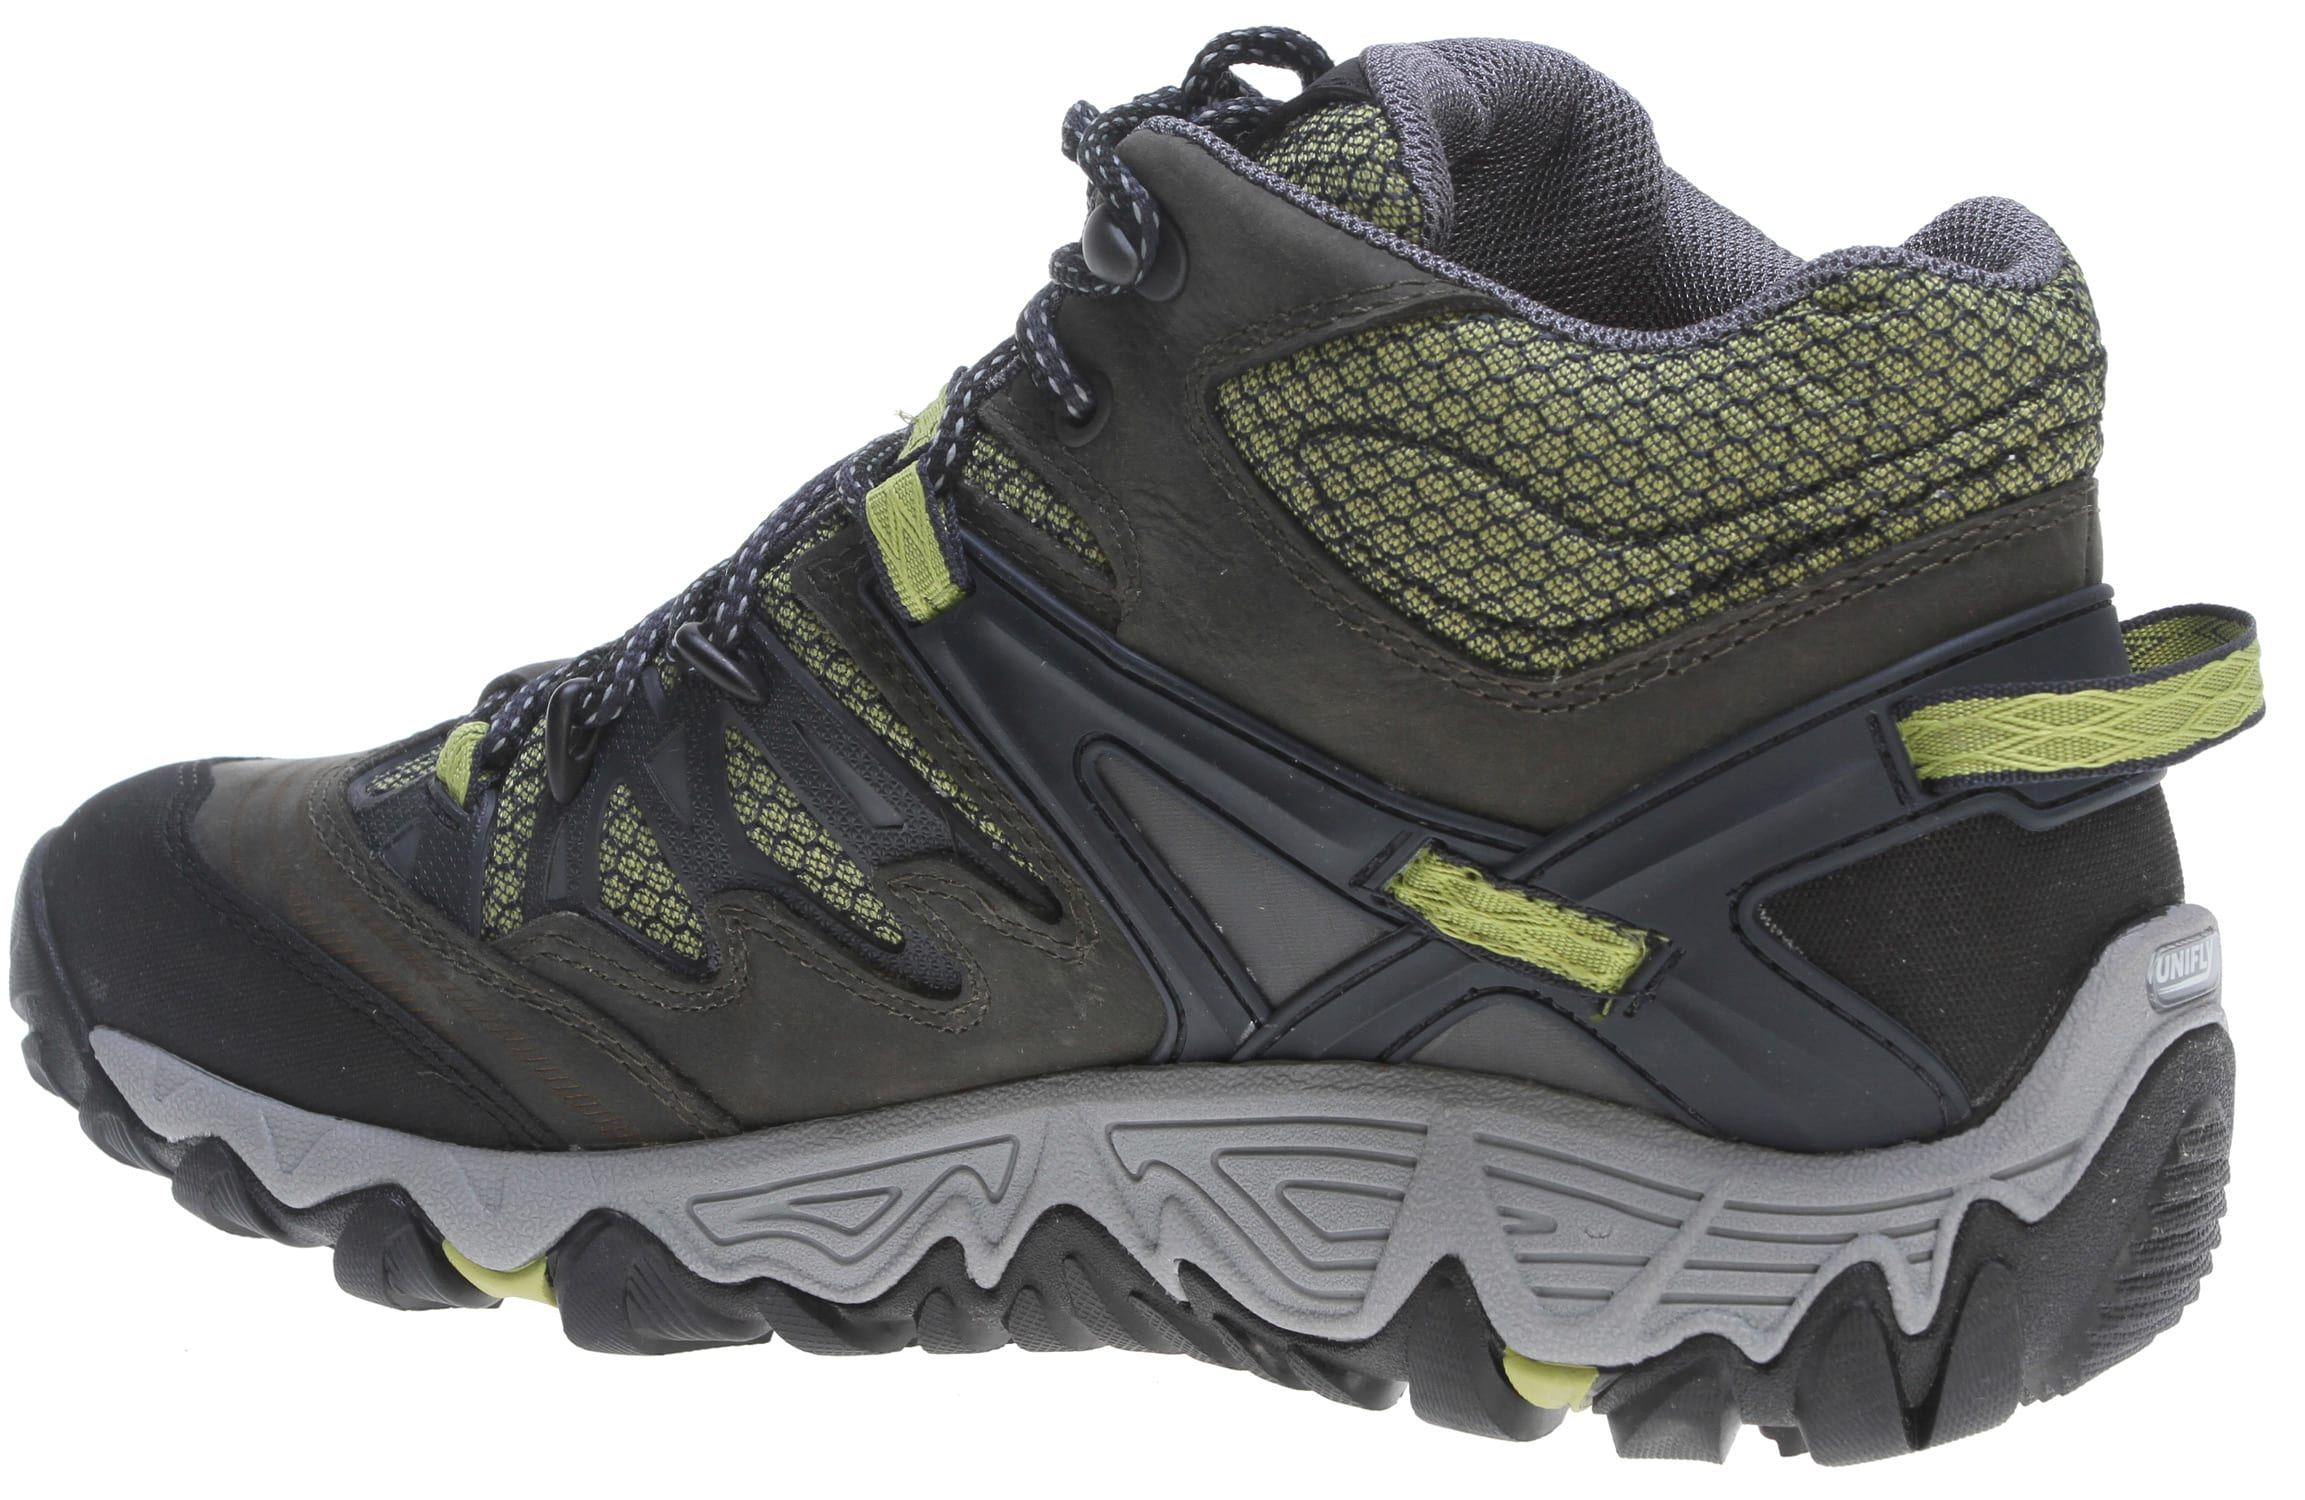 Merrell Allout Blaze Mid Waterproof Hiking Boots - thumbnail 3